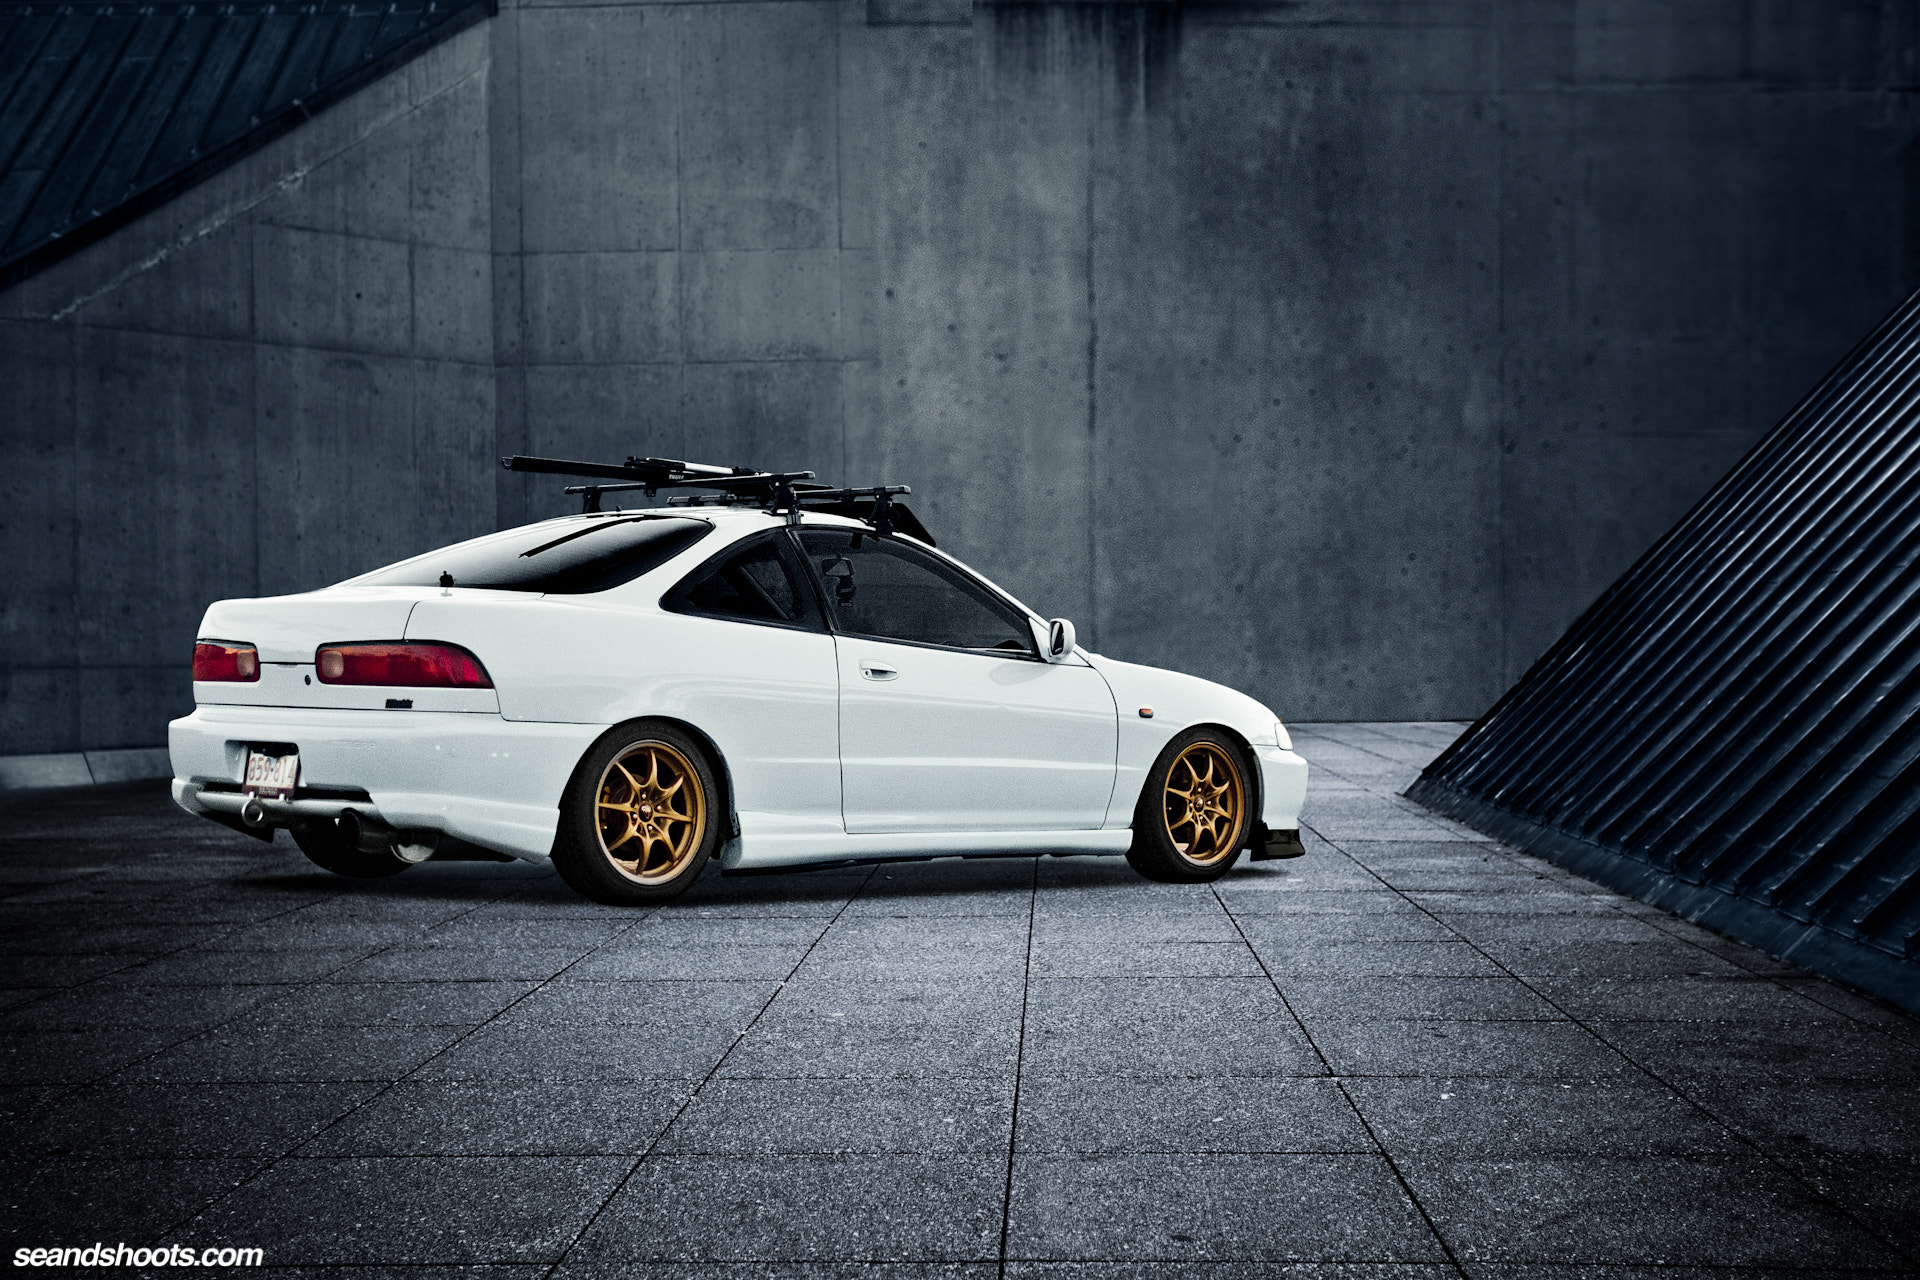 Photograph Rian's Integra by seandshoots .com on 500px